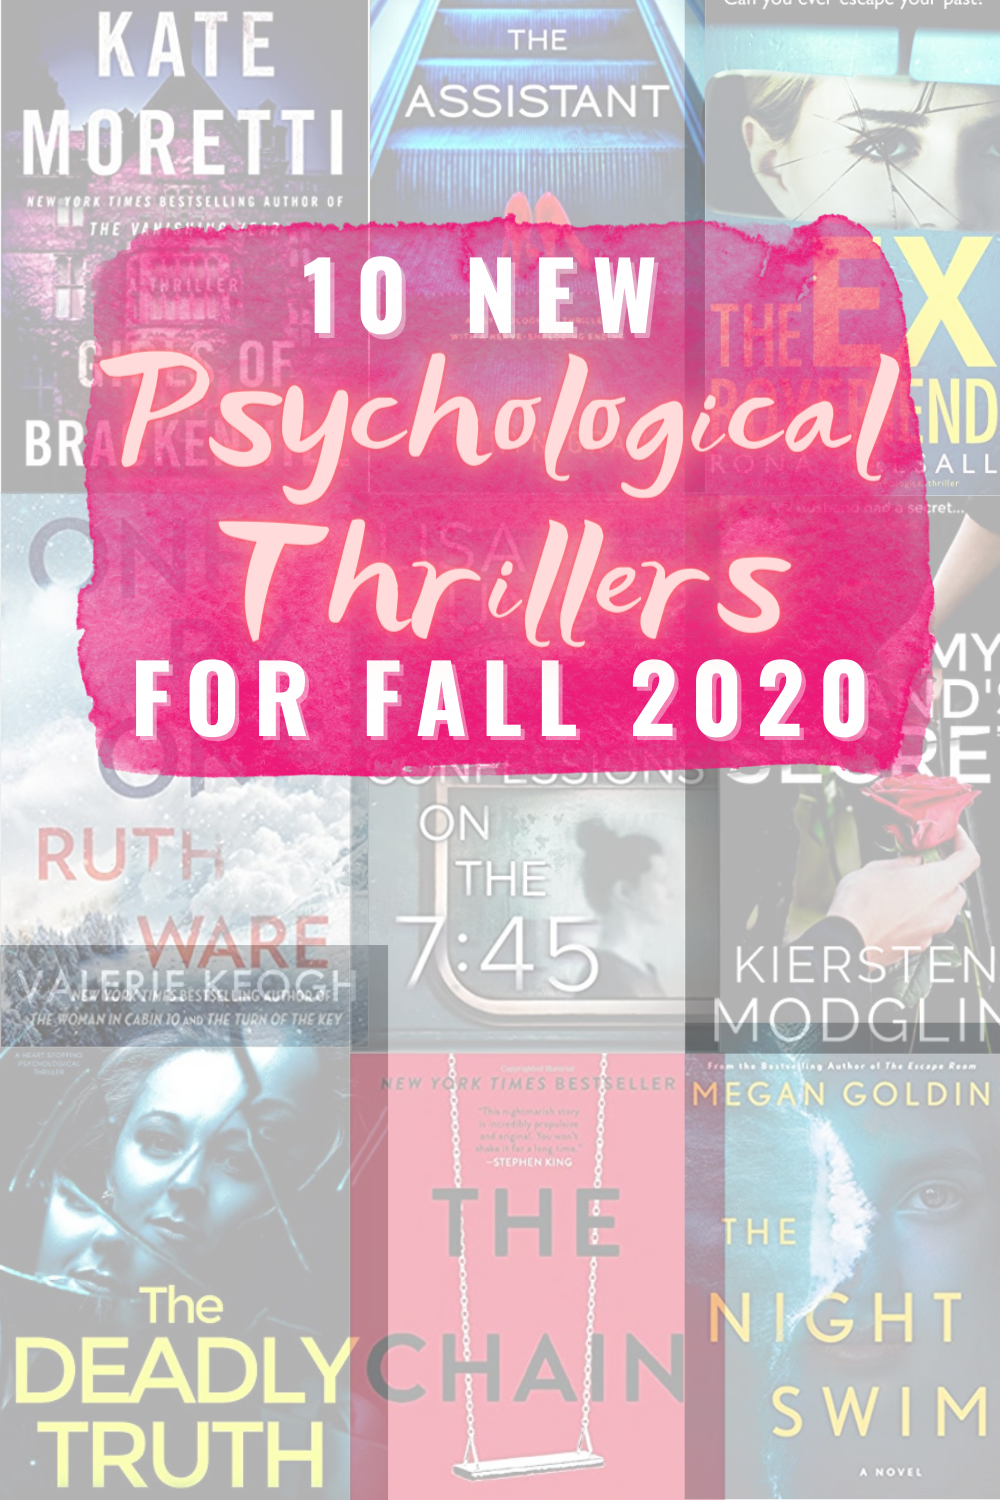 10 NEW PSYCHOLOGICAL THRILLERS FOR FALL 2020 - 10 new psychological thriller books to read this fall that will keep you on the edge of your seat! | Best Psychological Thrillers - New Psychological Thrillers - Best Thrillers To Read - Psychological Thriller Books